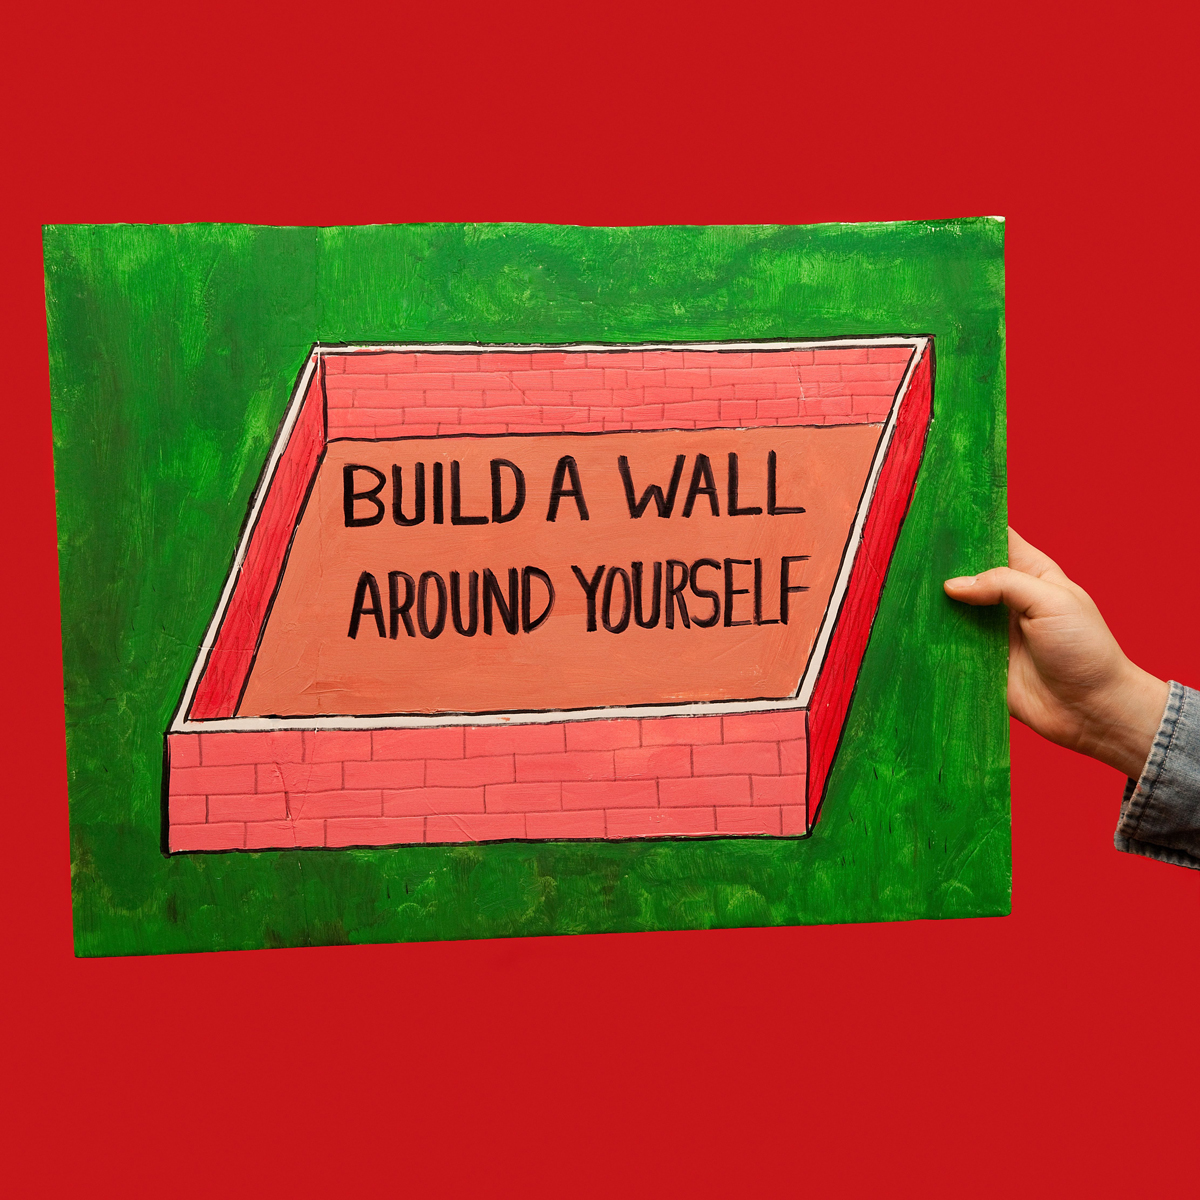 45 Protest Signs_Brandon and Olivia Locher_16_Build a Wall Around Yourself